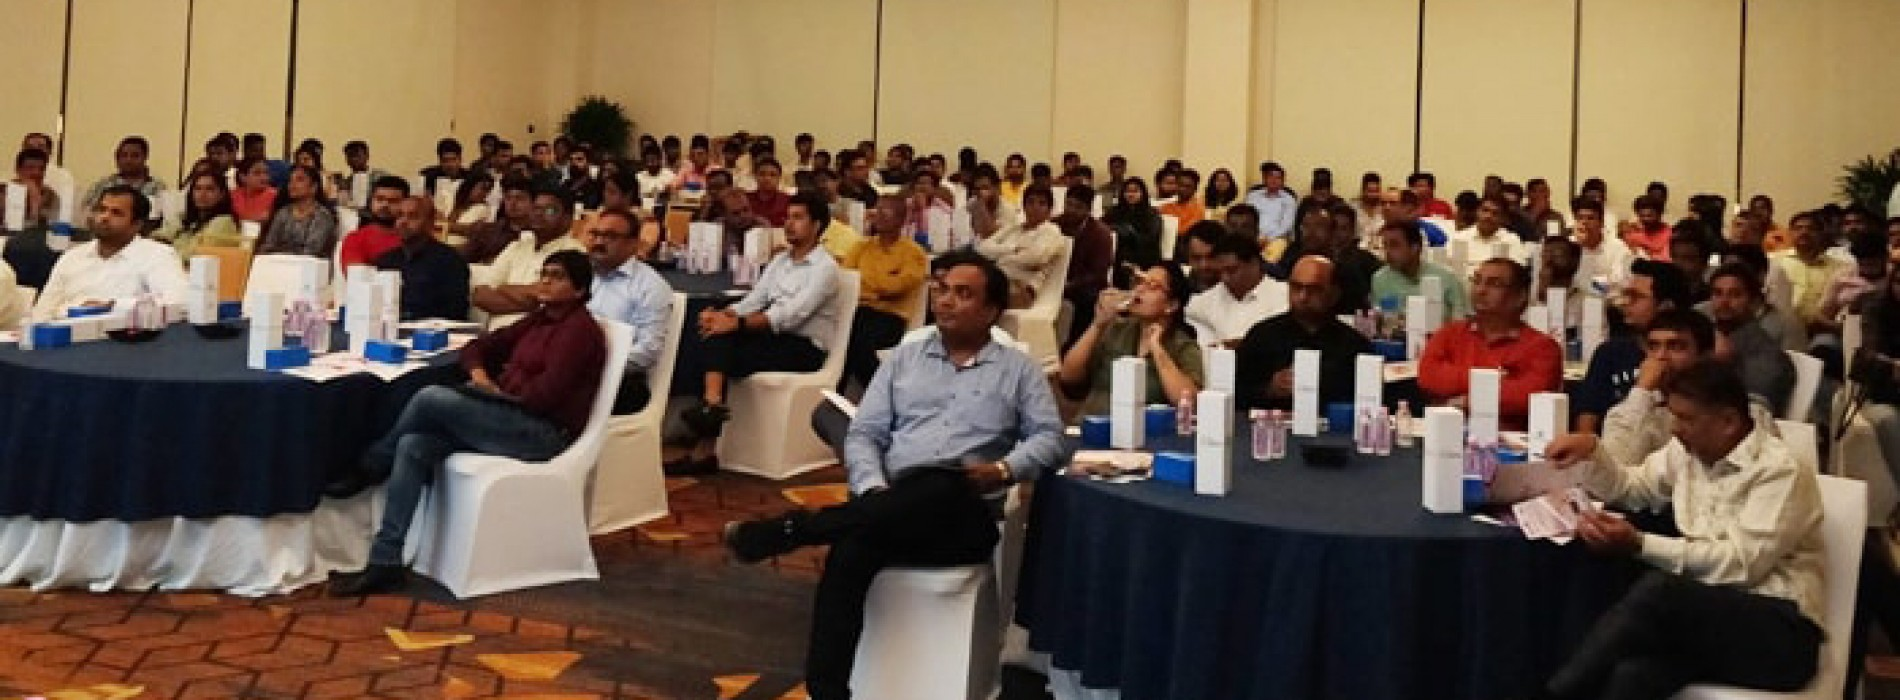 TMA successfully conducted multicity roadshow in Gujarat